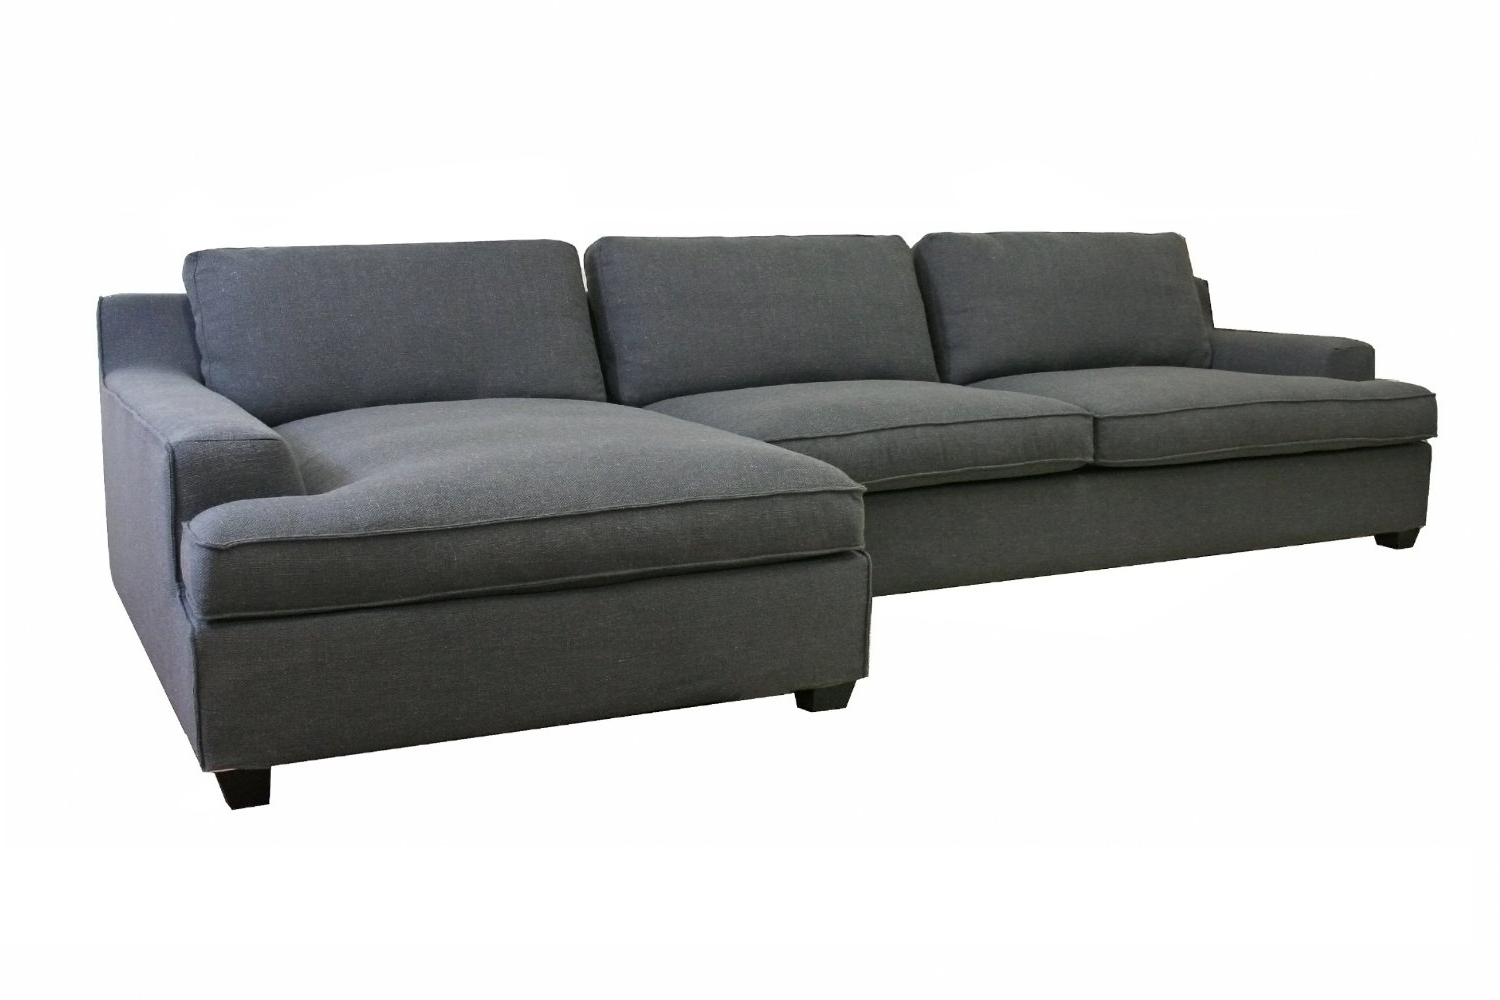 Most Popular Sectional Sofa Design: Sleeper Sofa With Chaise Best Ever Intended For Sleeper Sectional Sofas With Chaise (View 10 of 15)